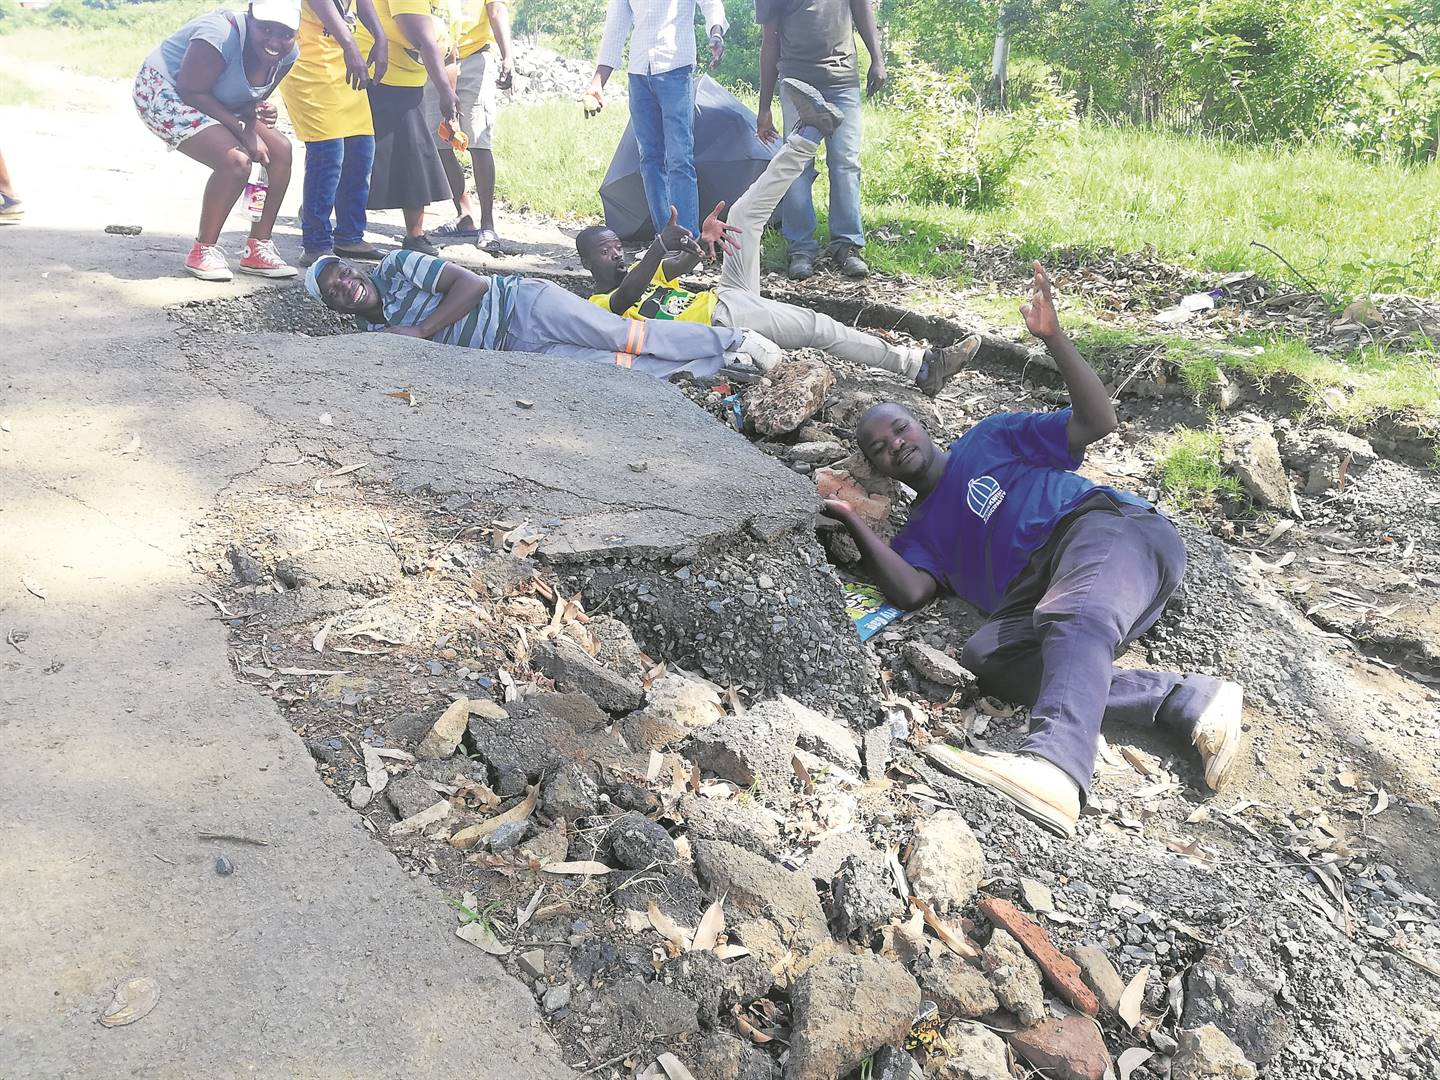 Willowfontein community members protest over the state of a road, which is in such bad condition that motorists can't utilise it.PHOTO: lethiwe makhanya